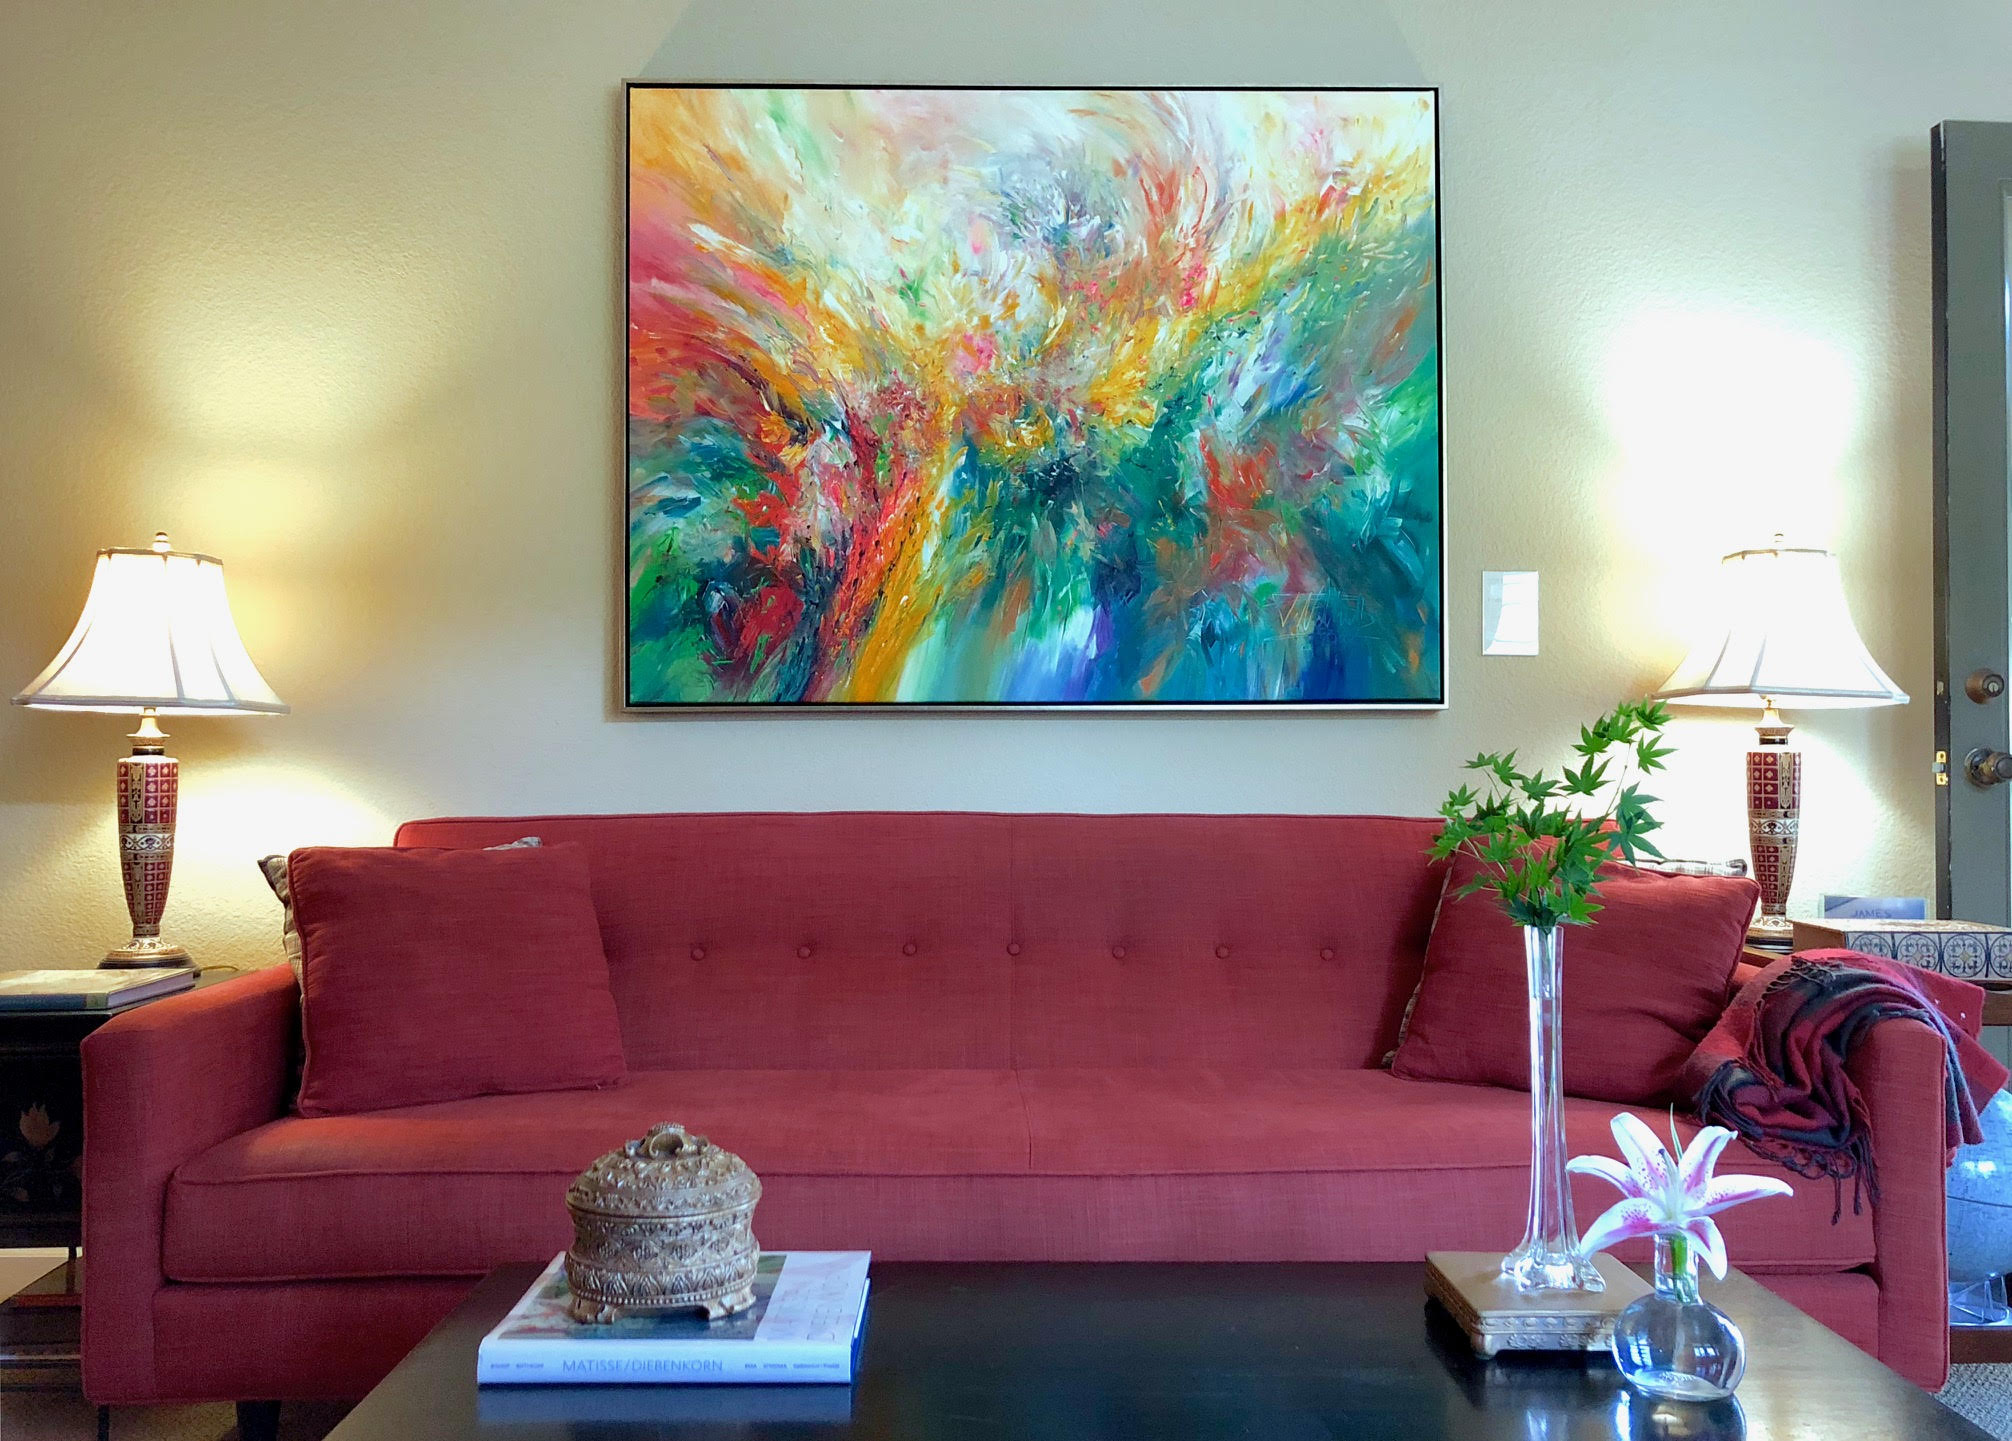 Use a floater frame, or floating frame, to showcase fine art affordably.